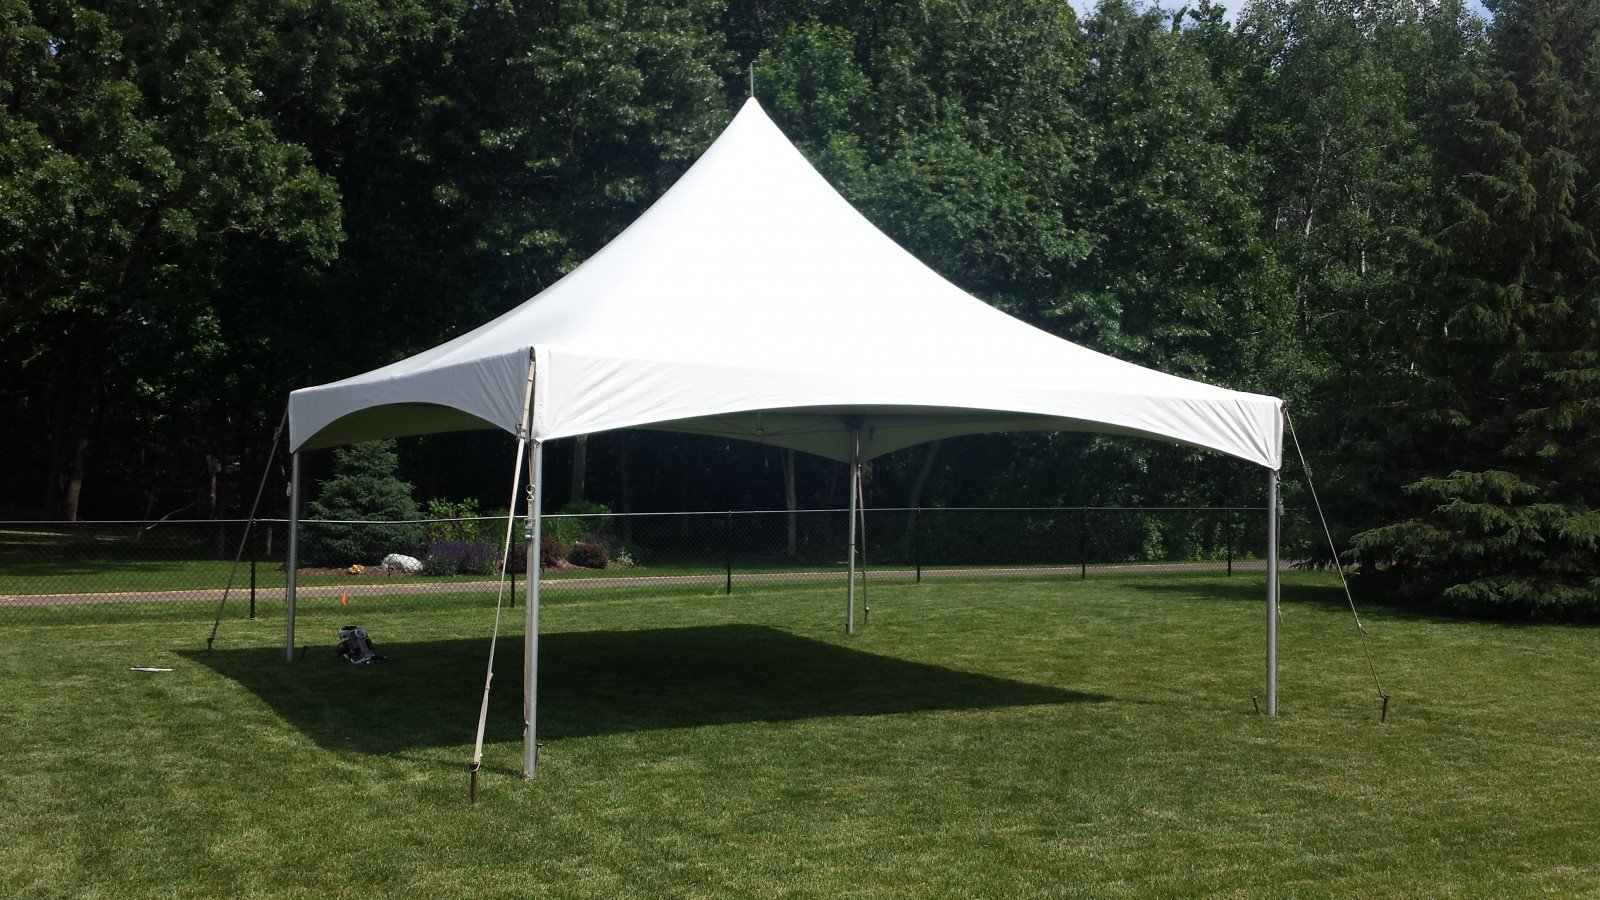 20'x20' High Peak Tent $200/day or weekend $350/for 2 to create 20'x40'